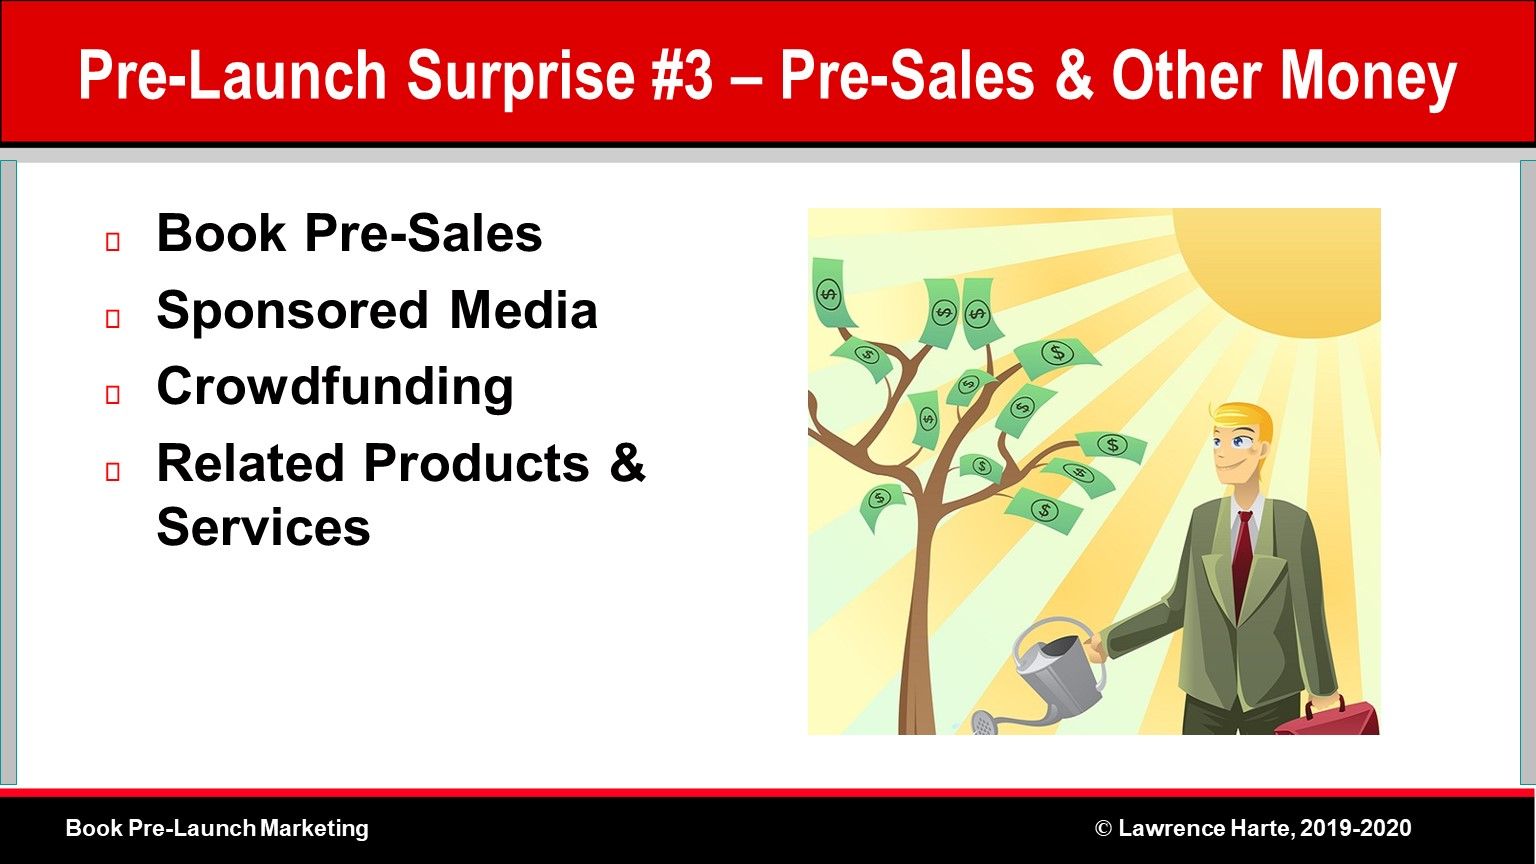 Book Pre-Launch Pre-Sales and Other Money